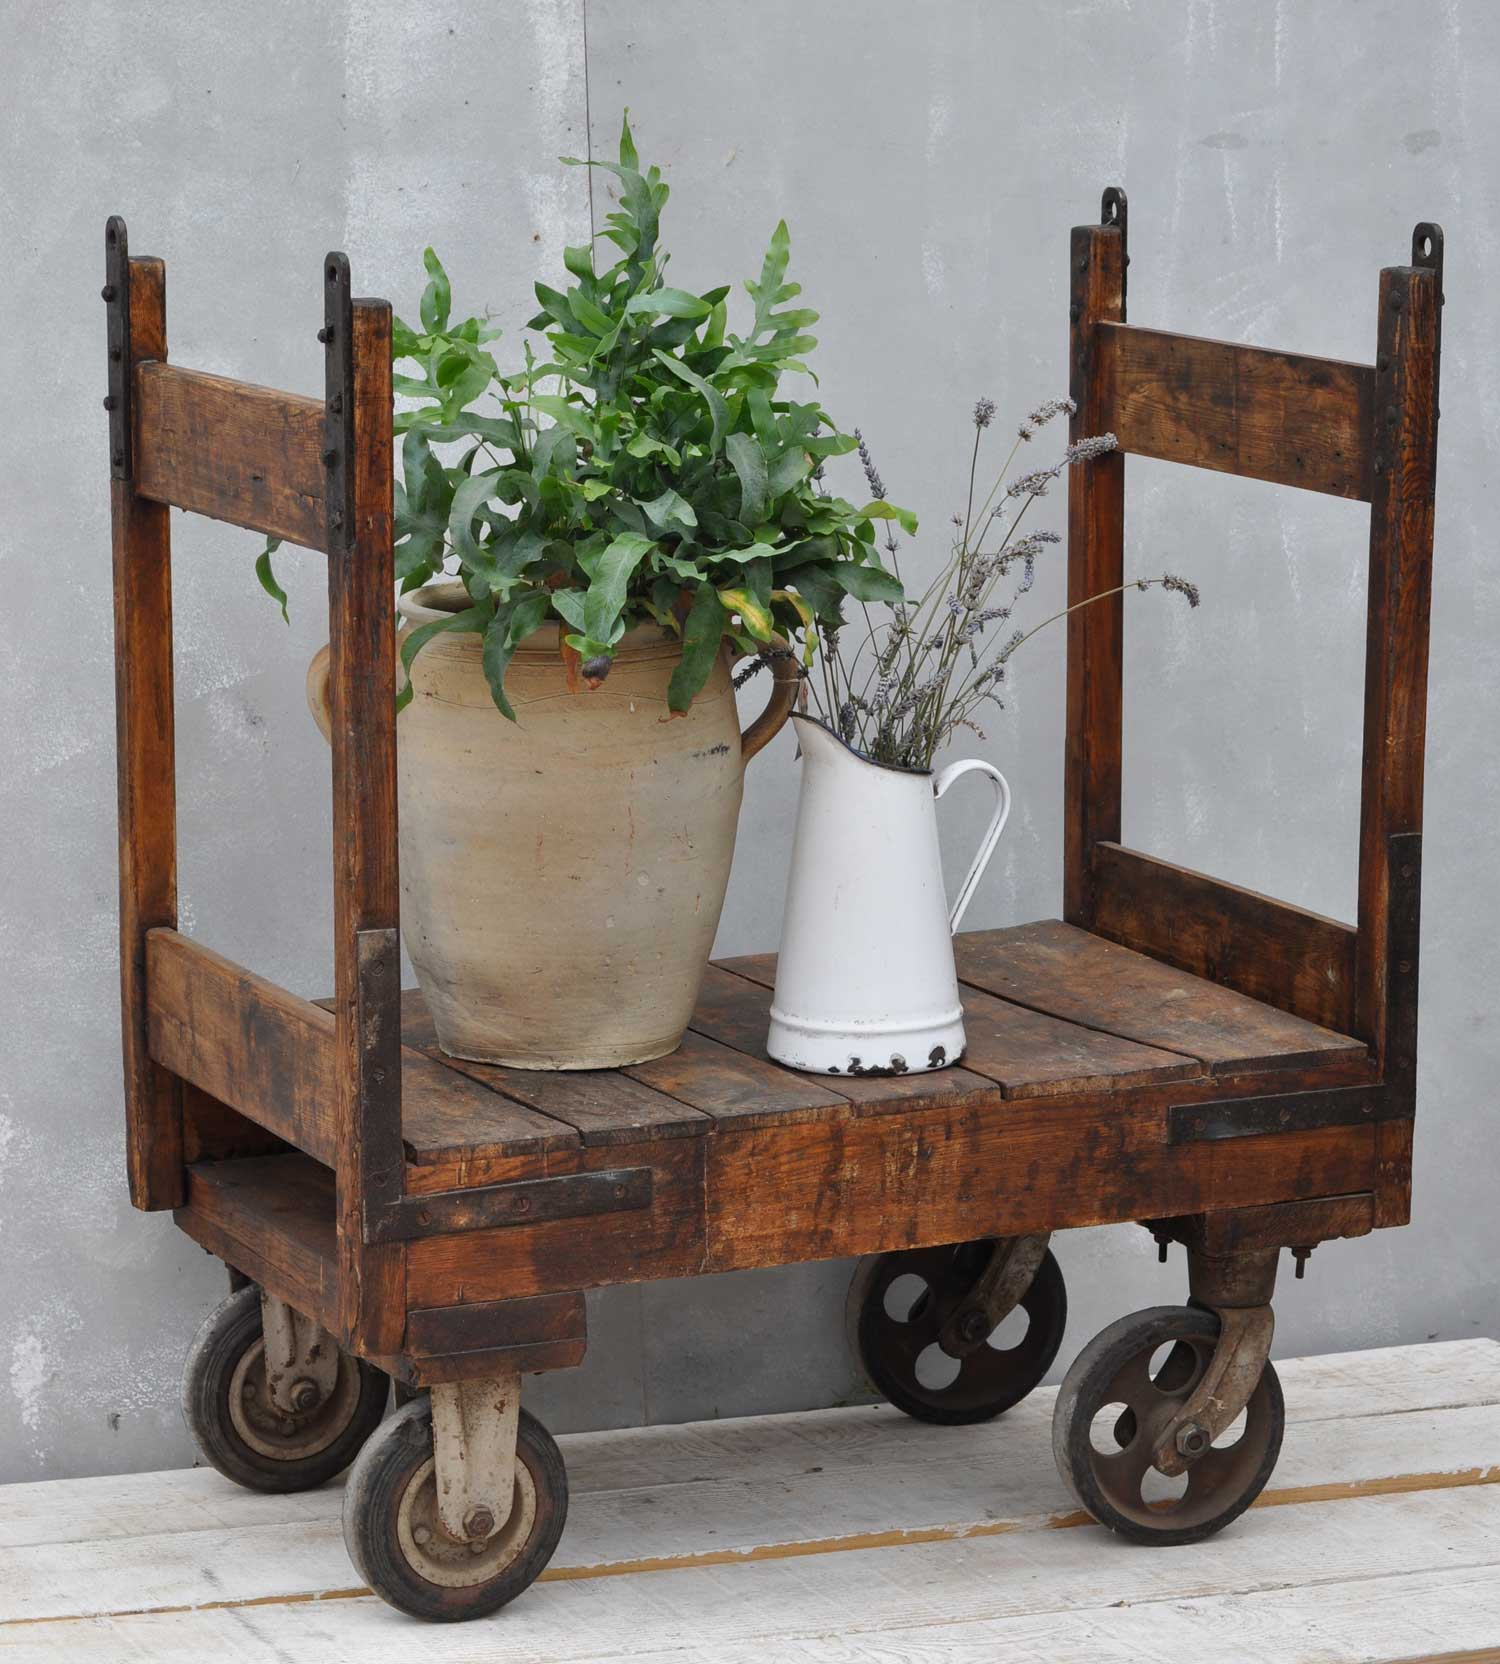 Antique Dutch Market Porter Cart - Iron and Timber